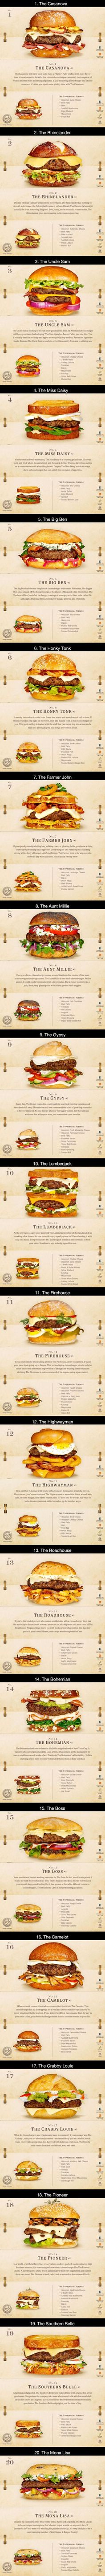 40 Glorious Burger Combinations Part 1